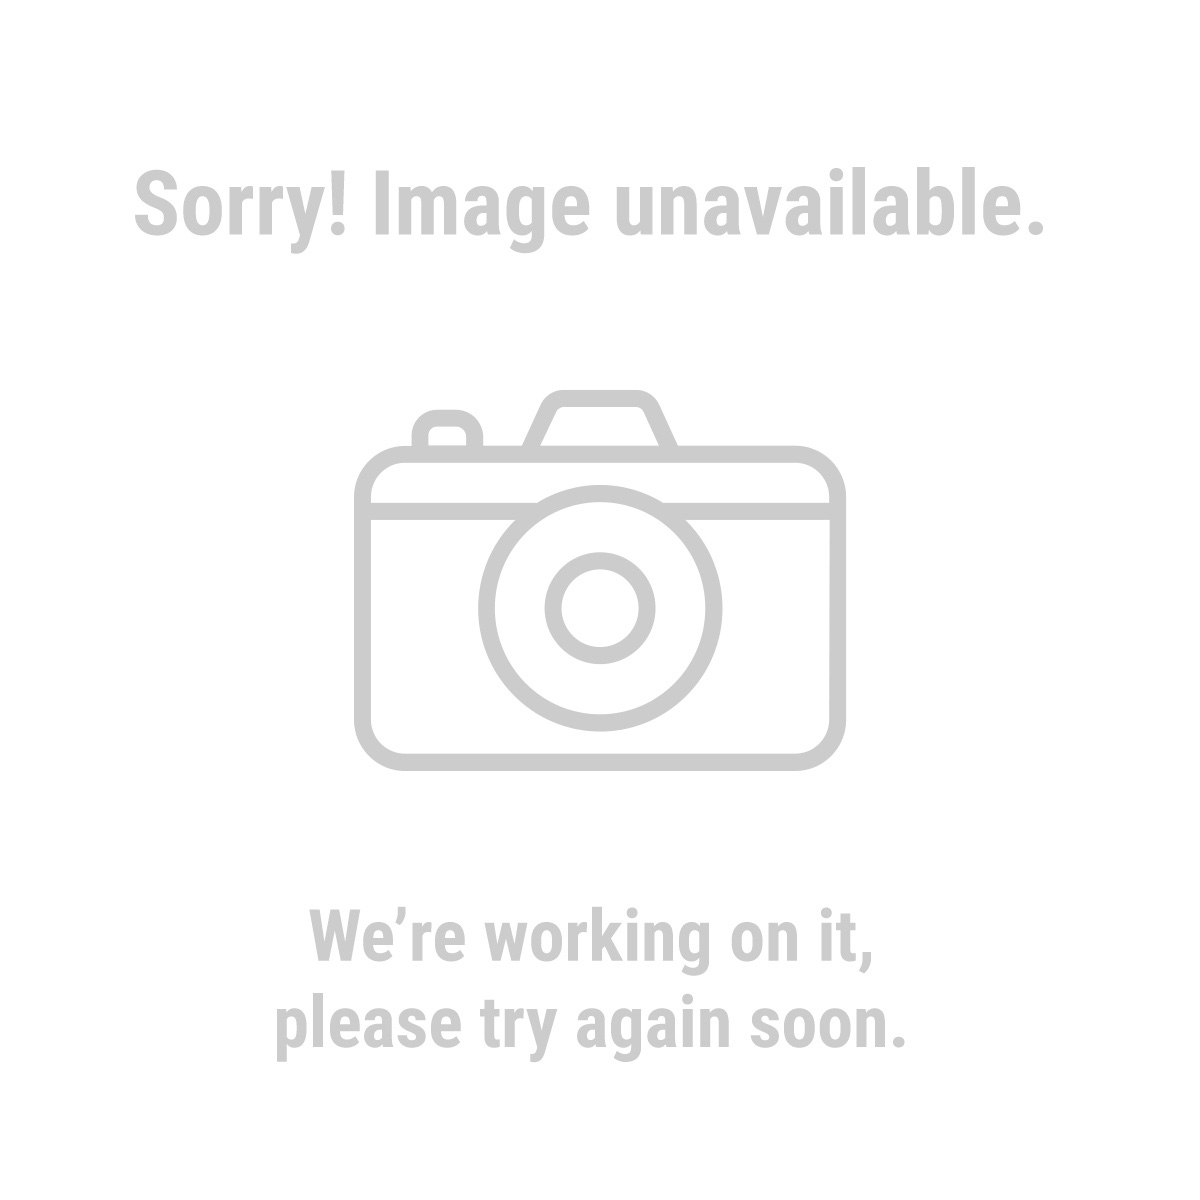 Warrior® 61216 9 in. 24 Grit Metal Grinding Wheel 5 Pc